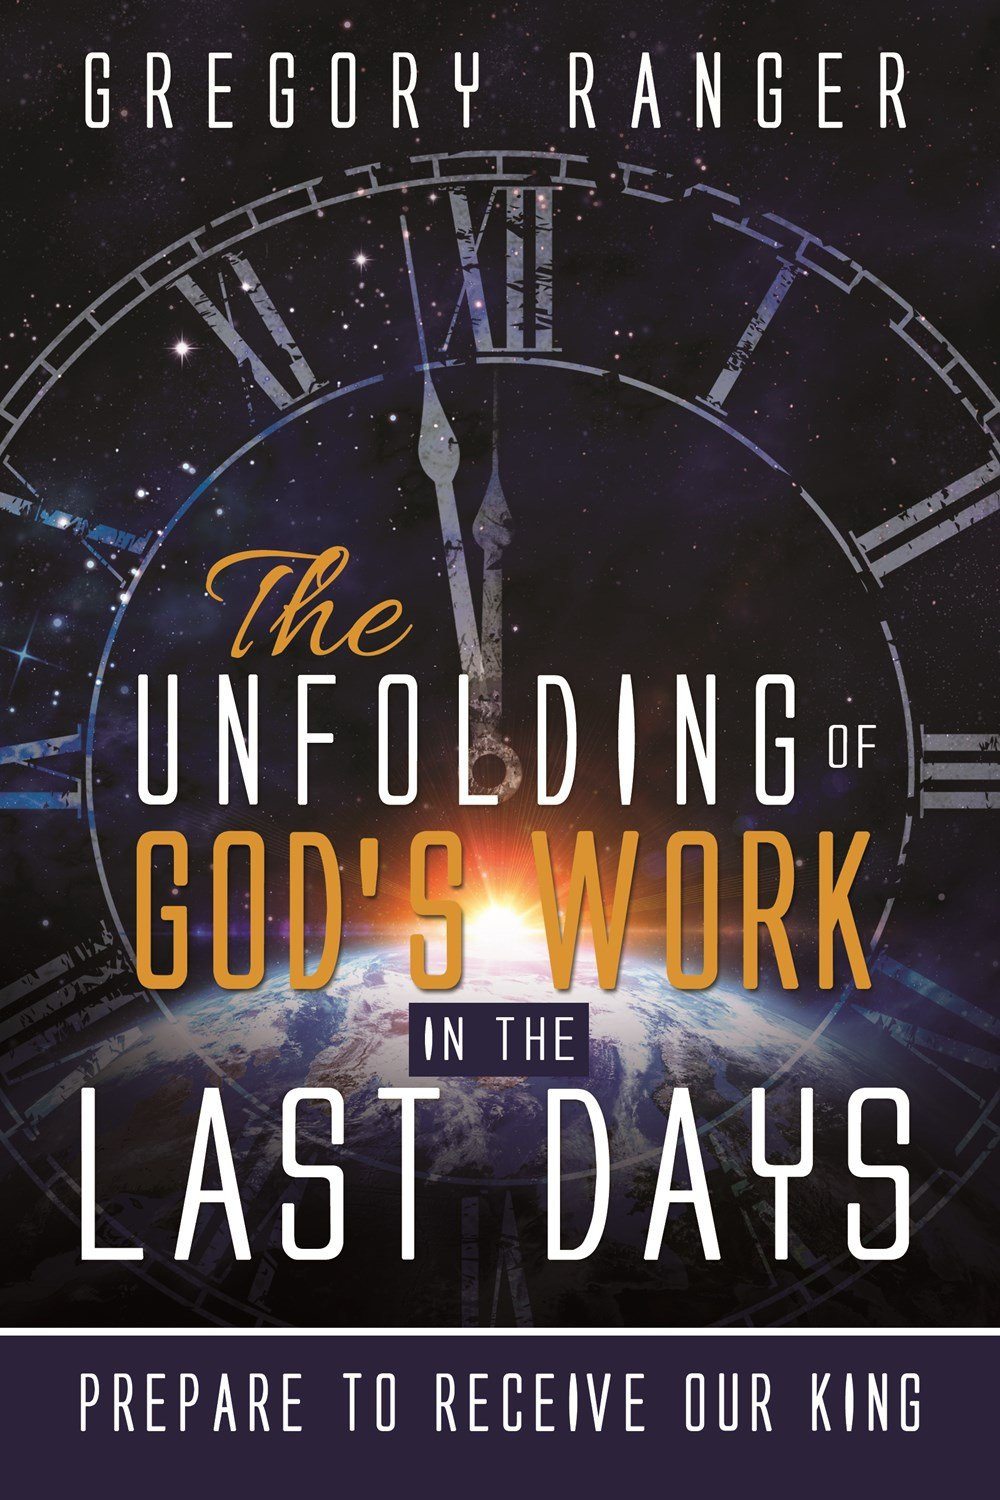 The Unfolding of God's Work in the Last Days